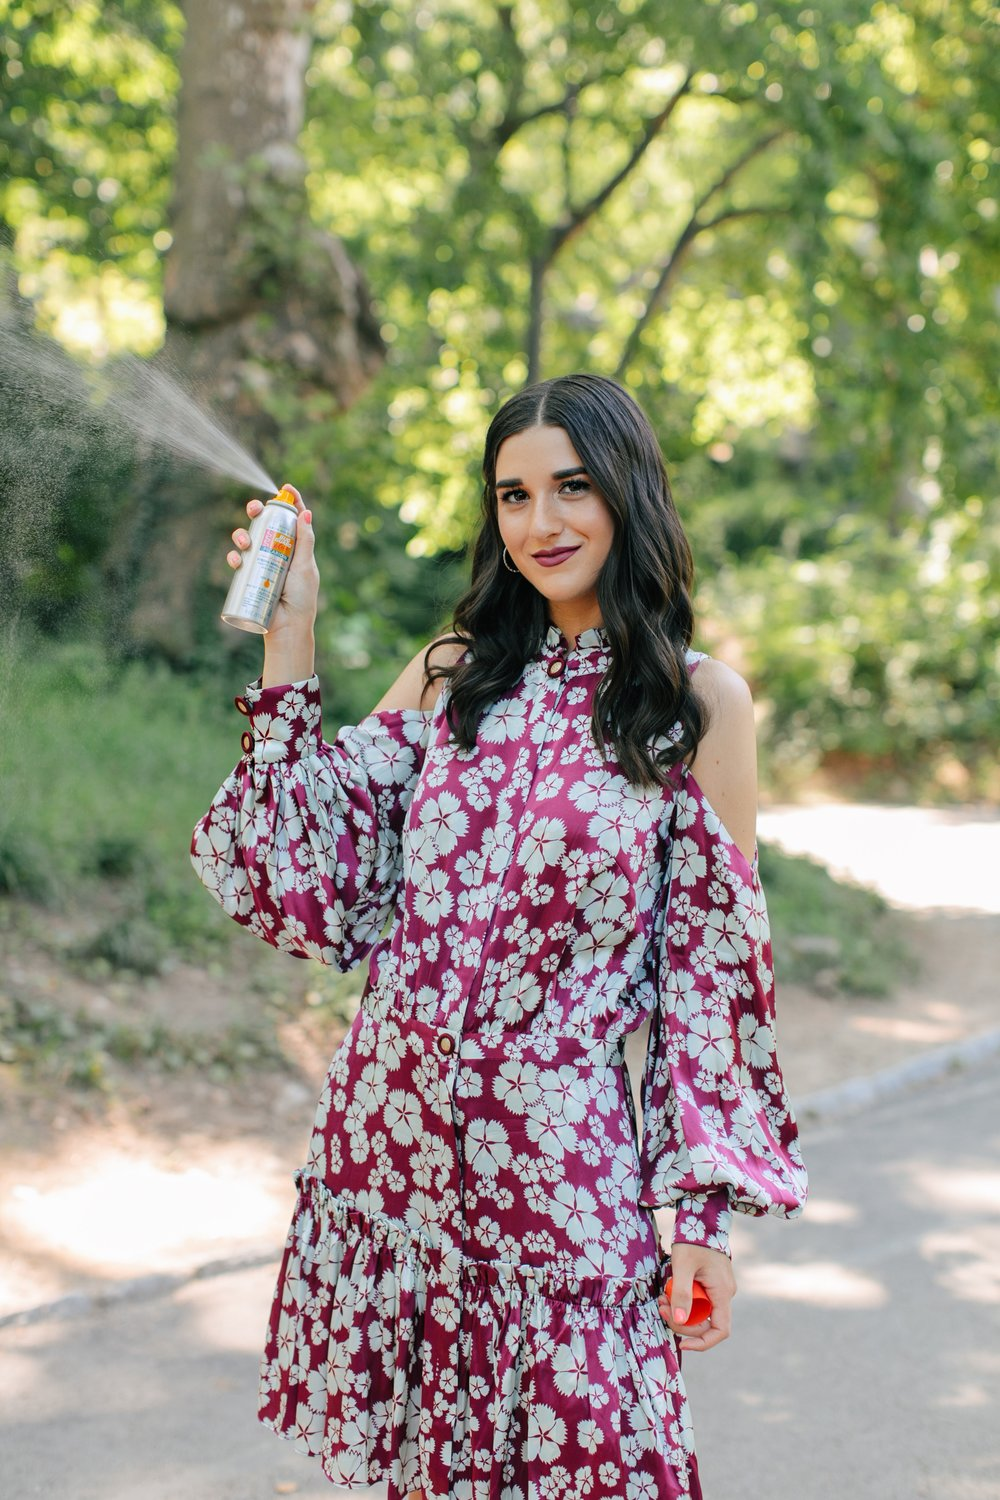 Bring On The Bug Spray Avon Bug Guard Esther Santer NYC Street Style Blogger Outdoors Adventure Explore Upstate New York Central Park Printed Dress  Designer Product Review Button Front Photoshoot Brand Collab Beauty Skincare Cold Shoulder Circle Bag.jpg